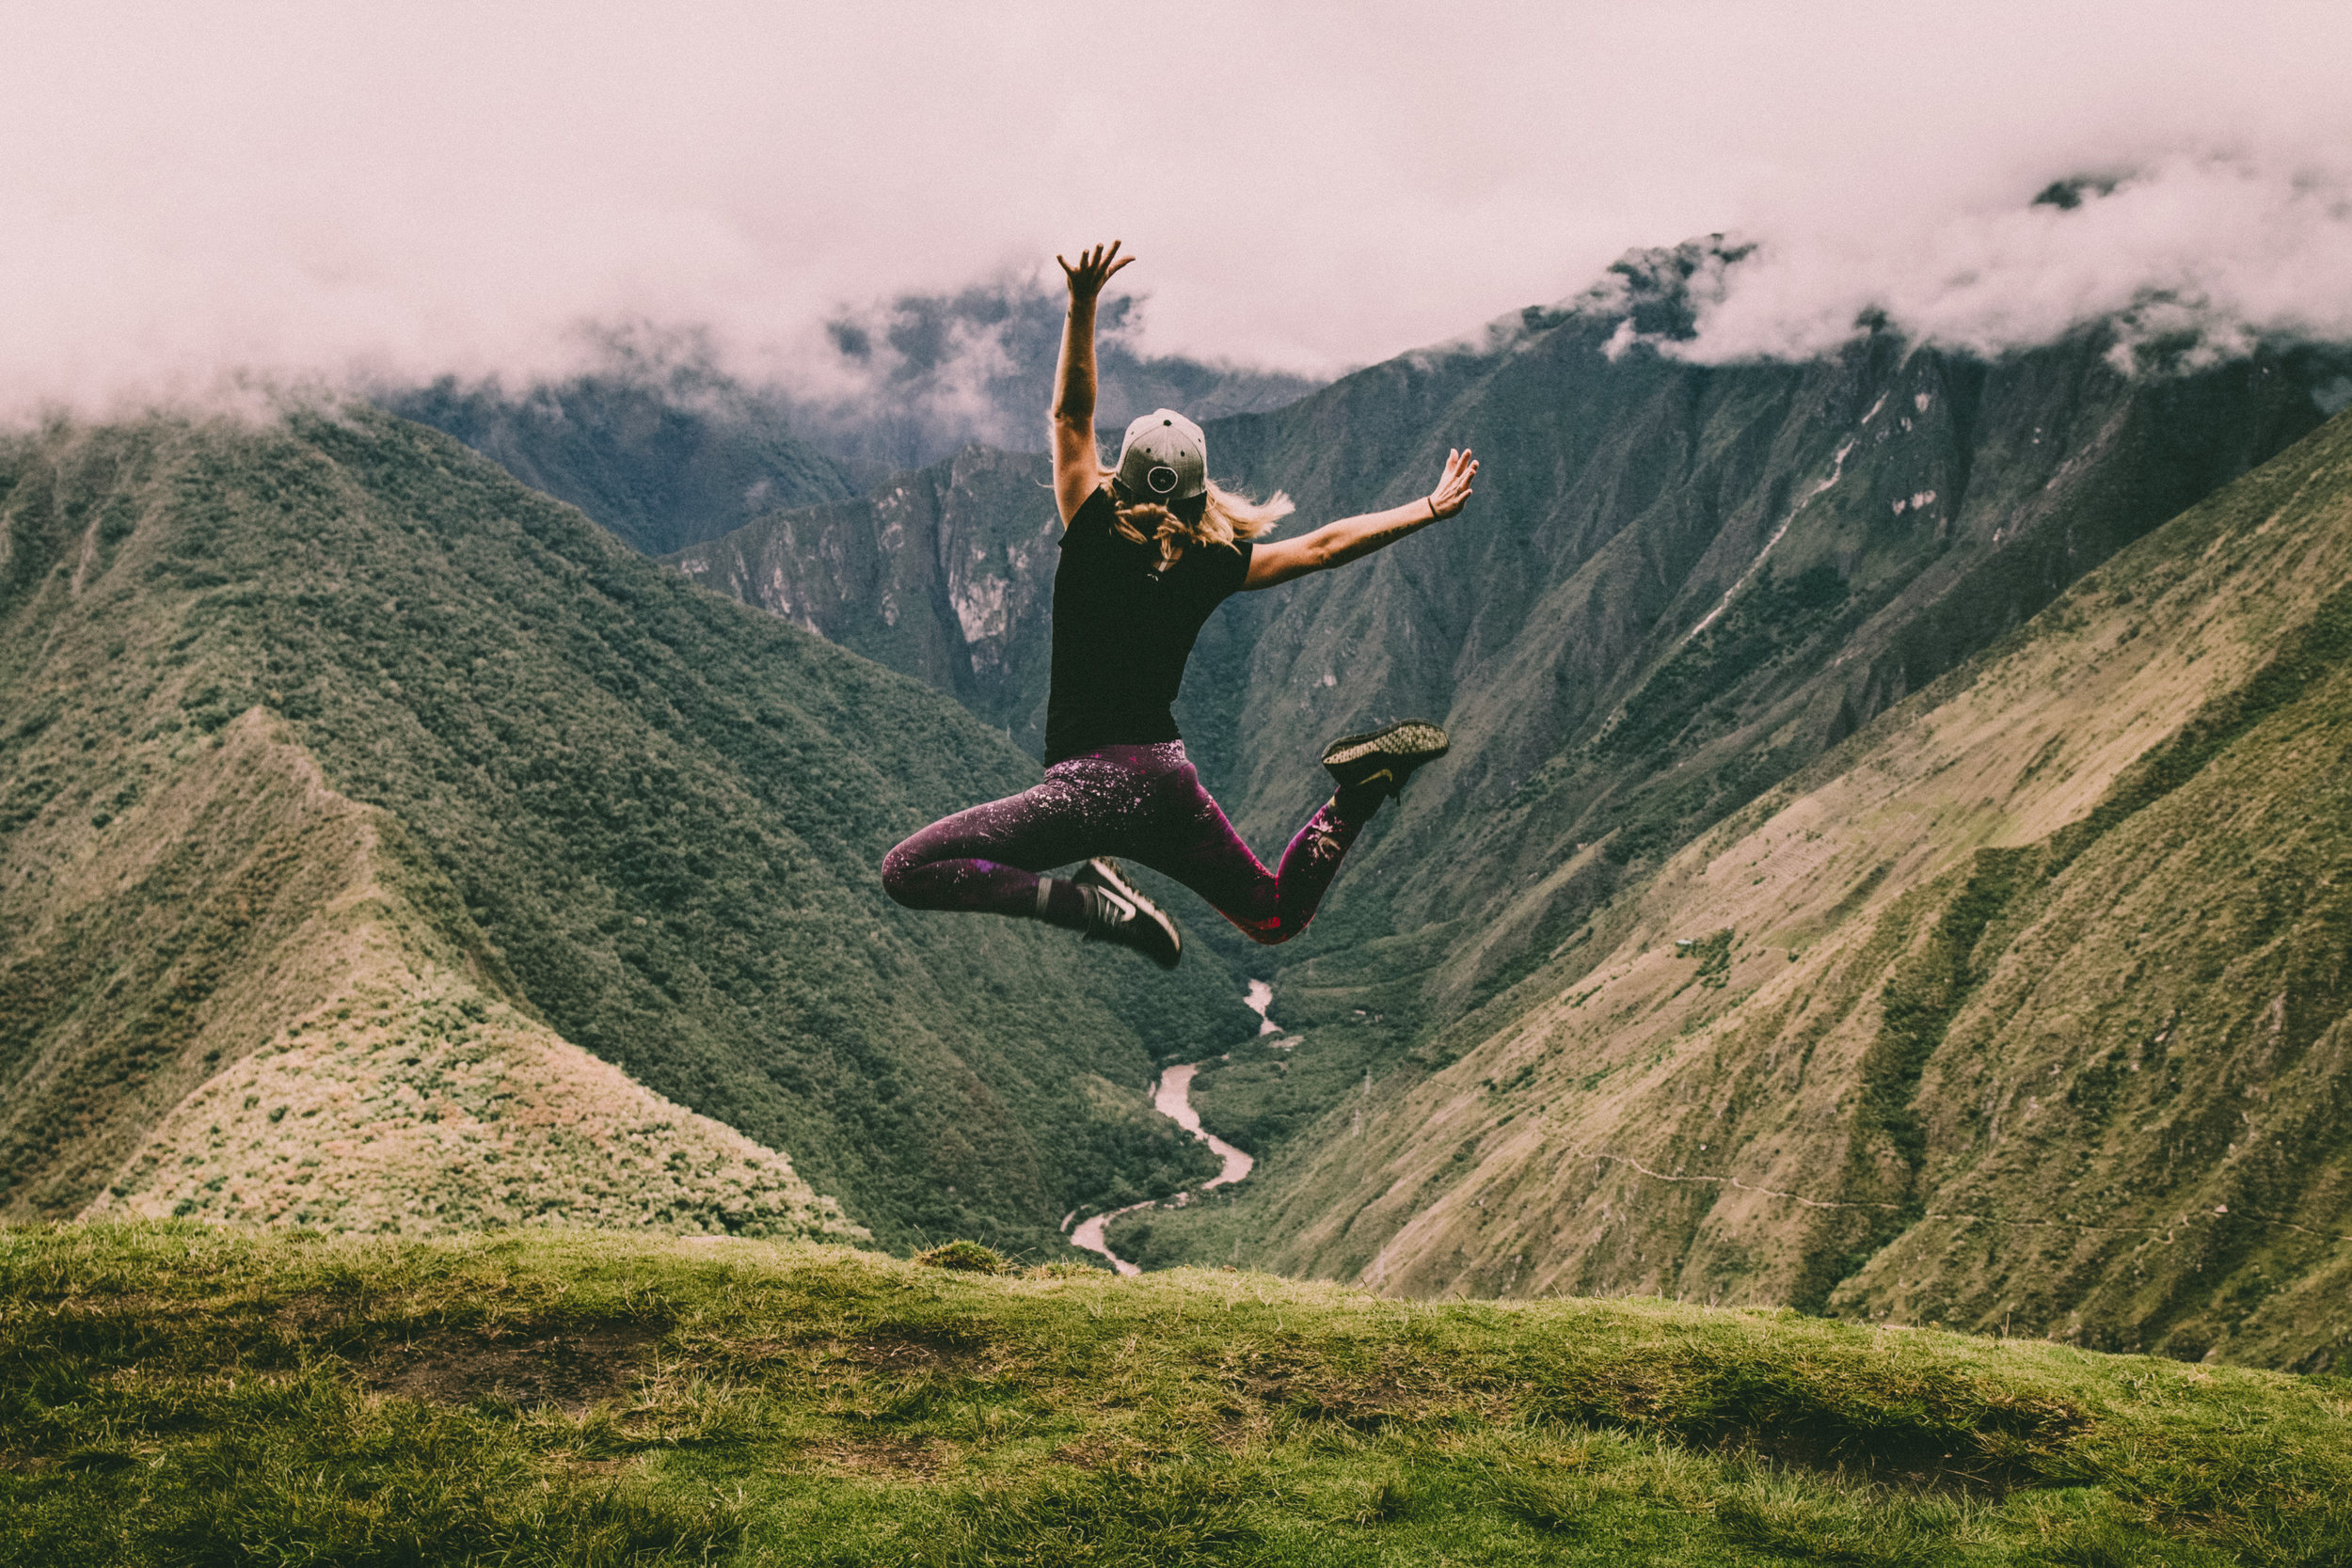 BUILD, CREATE and LEAN into JOY! Take one day and lean into joy for just a moment. Dance, jump, breathe deeply, allow yourself one moment to feel Joy this week. What fills you with joy?